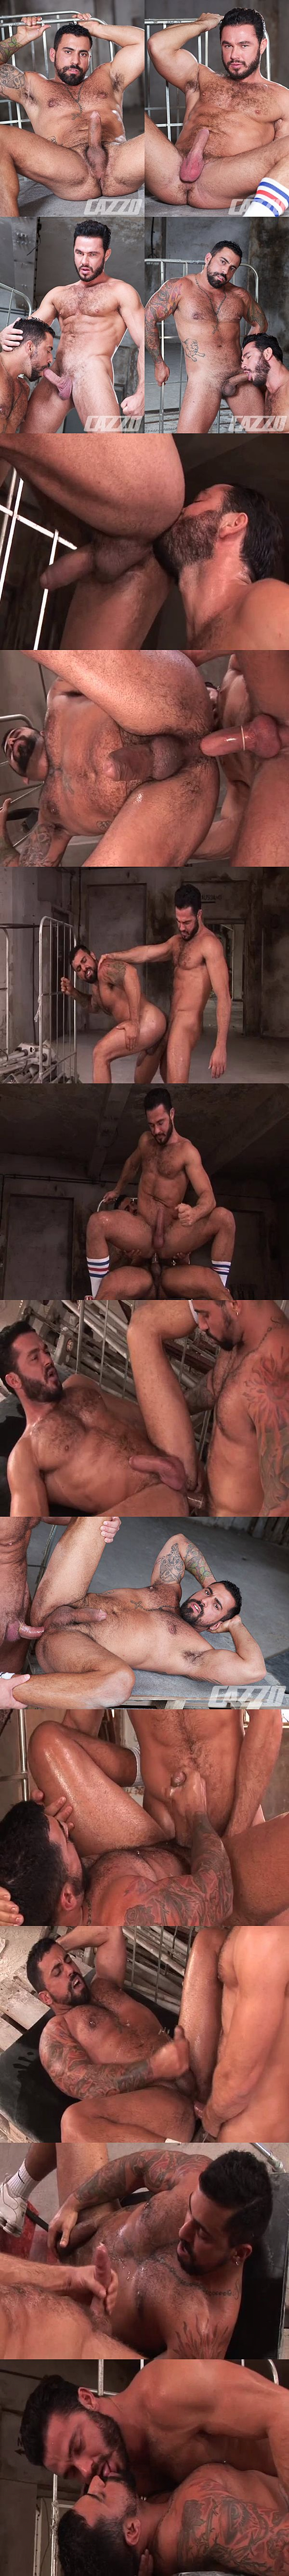 Real life lovers Jessy Ares & Ricky Ares flip-fuck with Ricky's bottoming debut at Cazzoclub 02